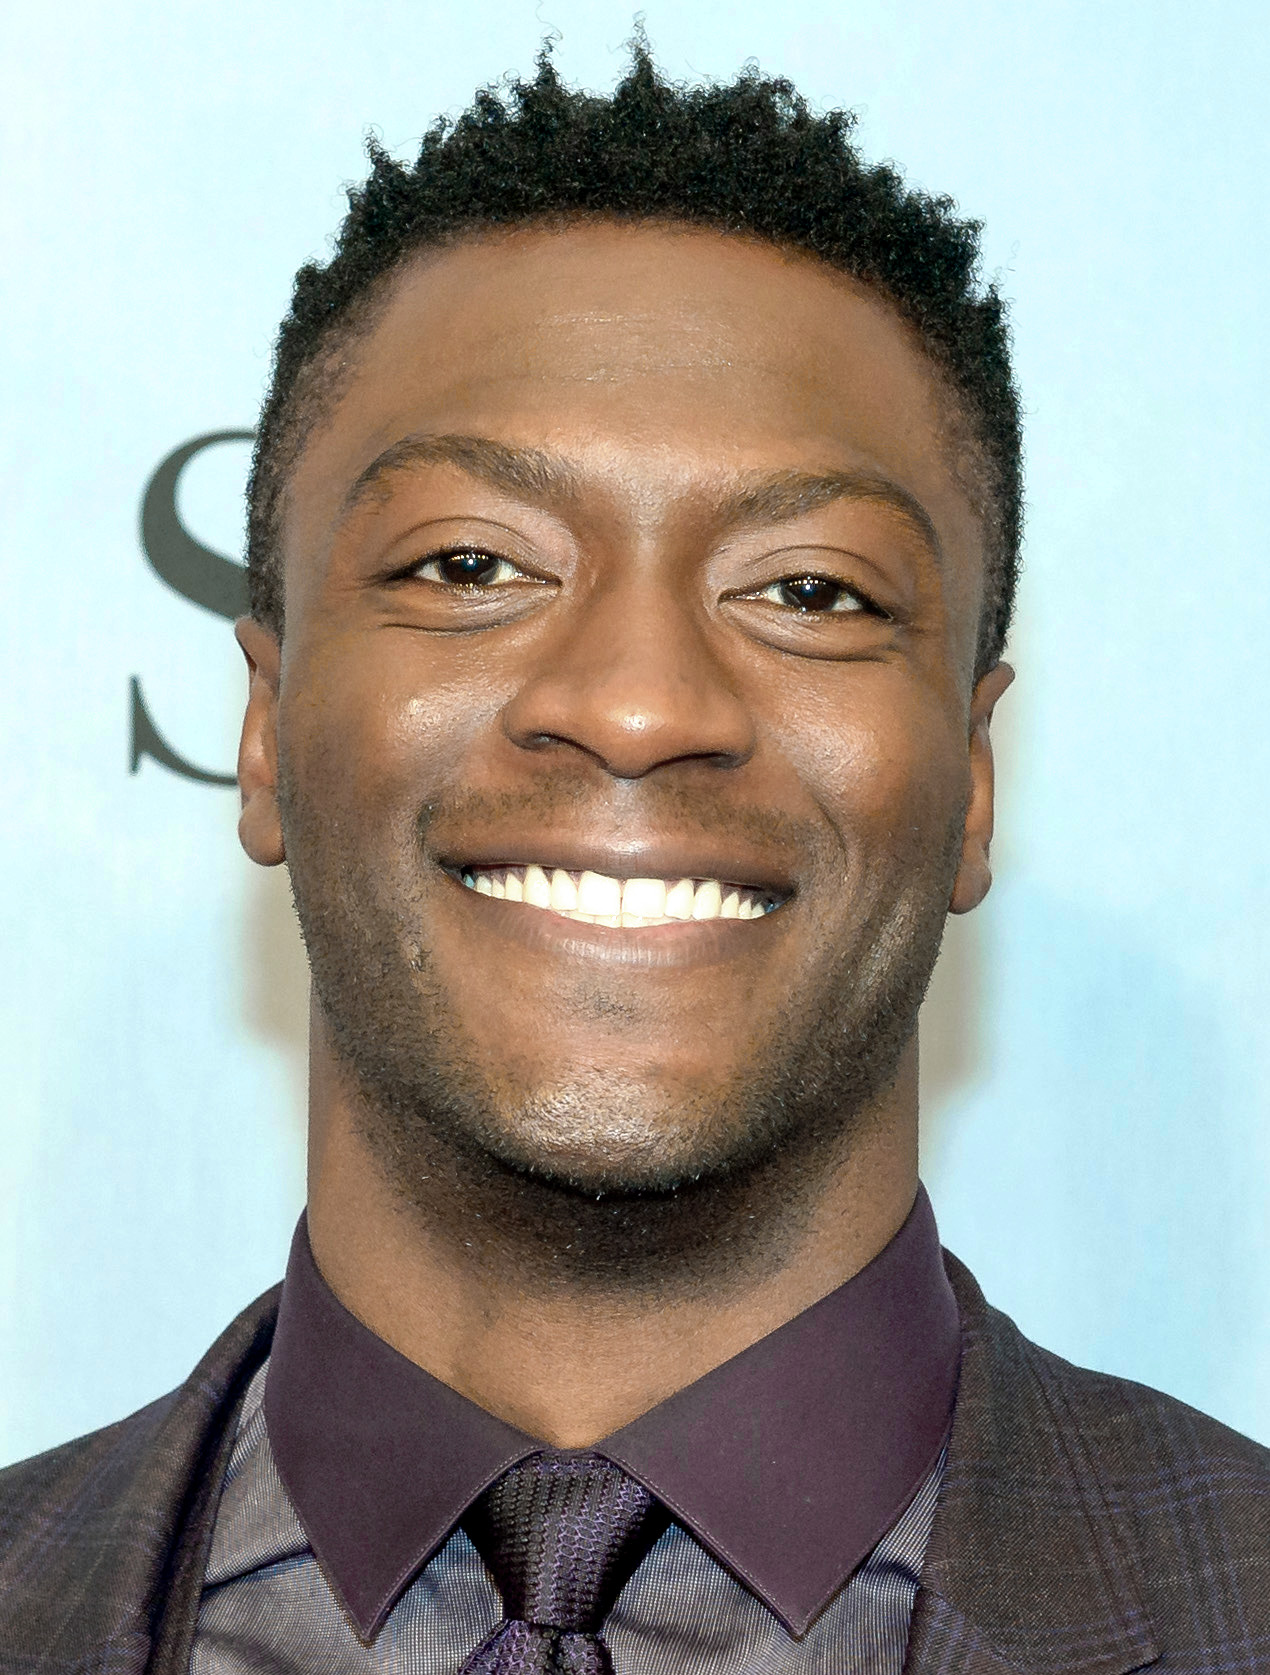 The 32-year old son of father Aldis Hodge and mother Yolette Evangeline Richardson Aldis Hodge in 2019 photo. Aldis Hodge earned a  million dollar salary - leaving the net worth at 1 million in 2019